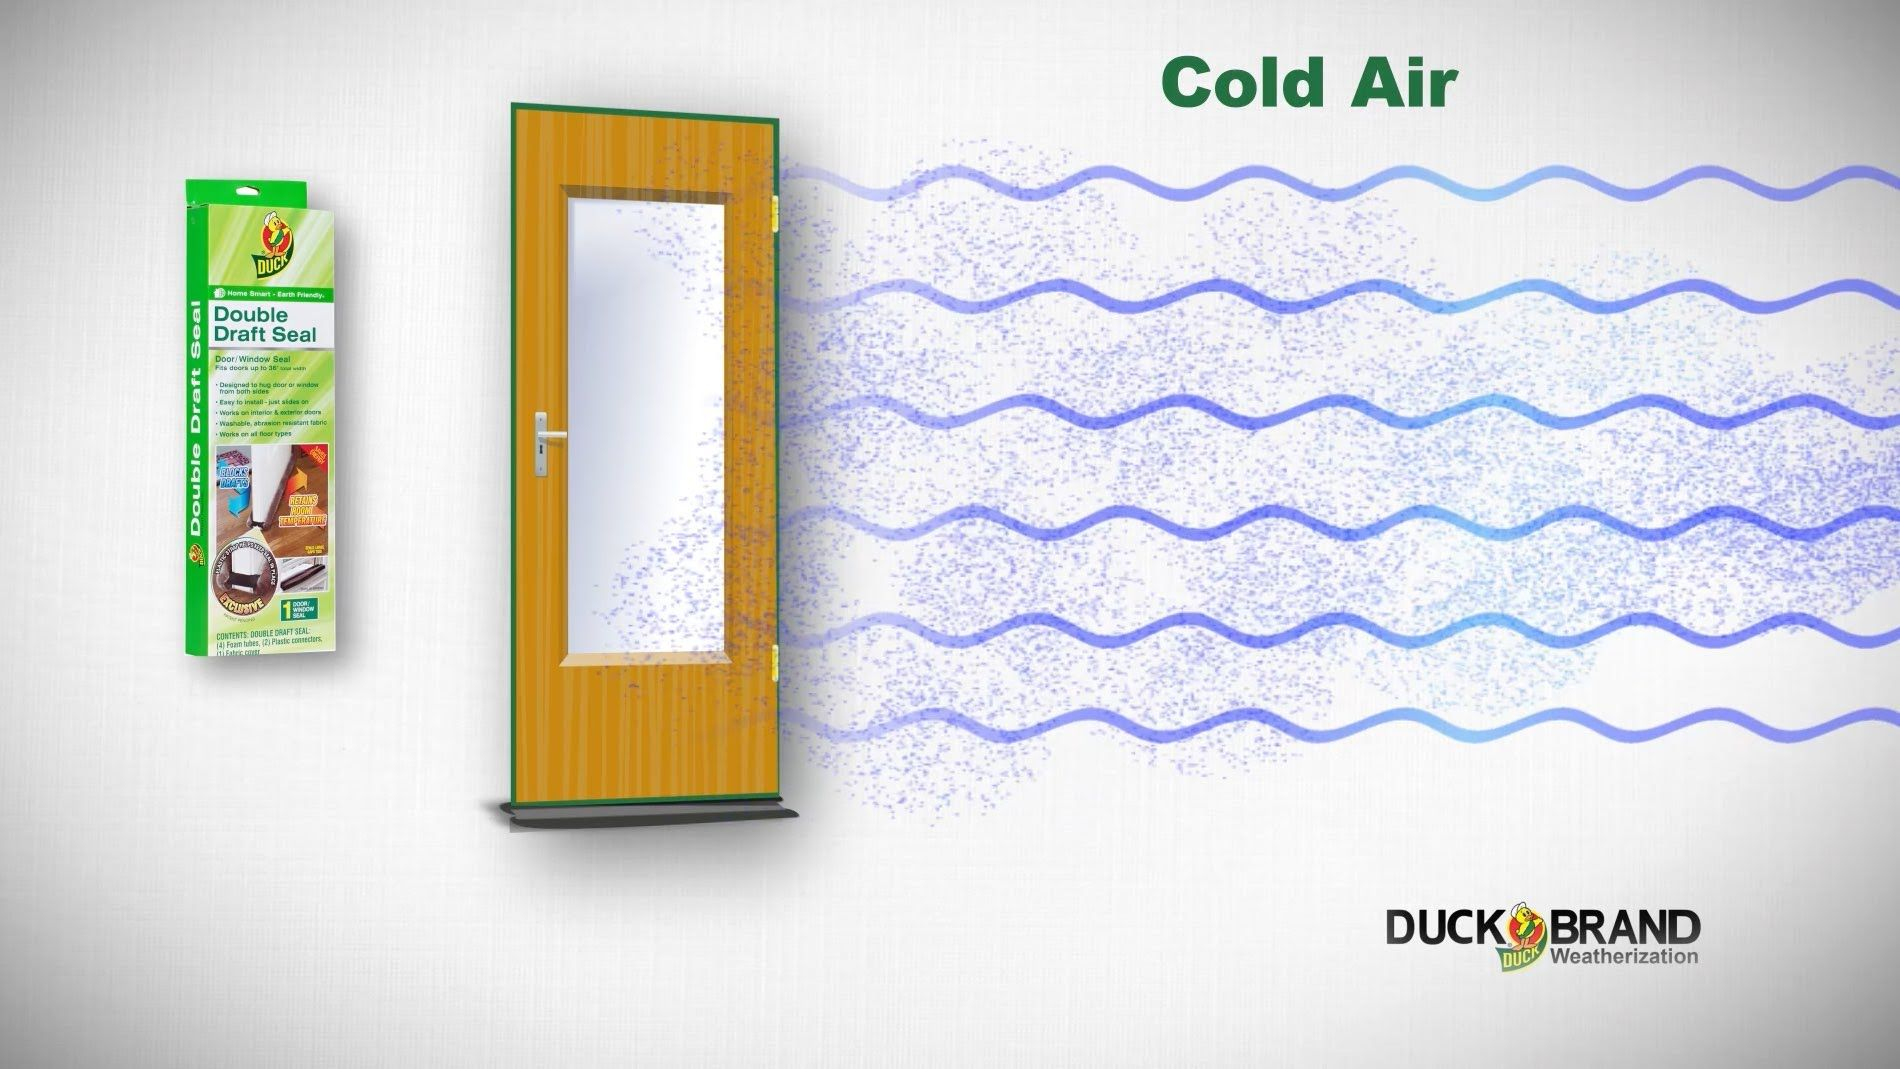 How To Install A Duck Brand Double Draft Seal Https Www Youtube Com Watch V Wsj 03eamio Utm Campaign Weatherization General U Winter House Installation Seal